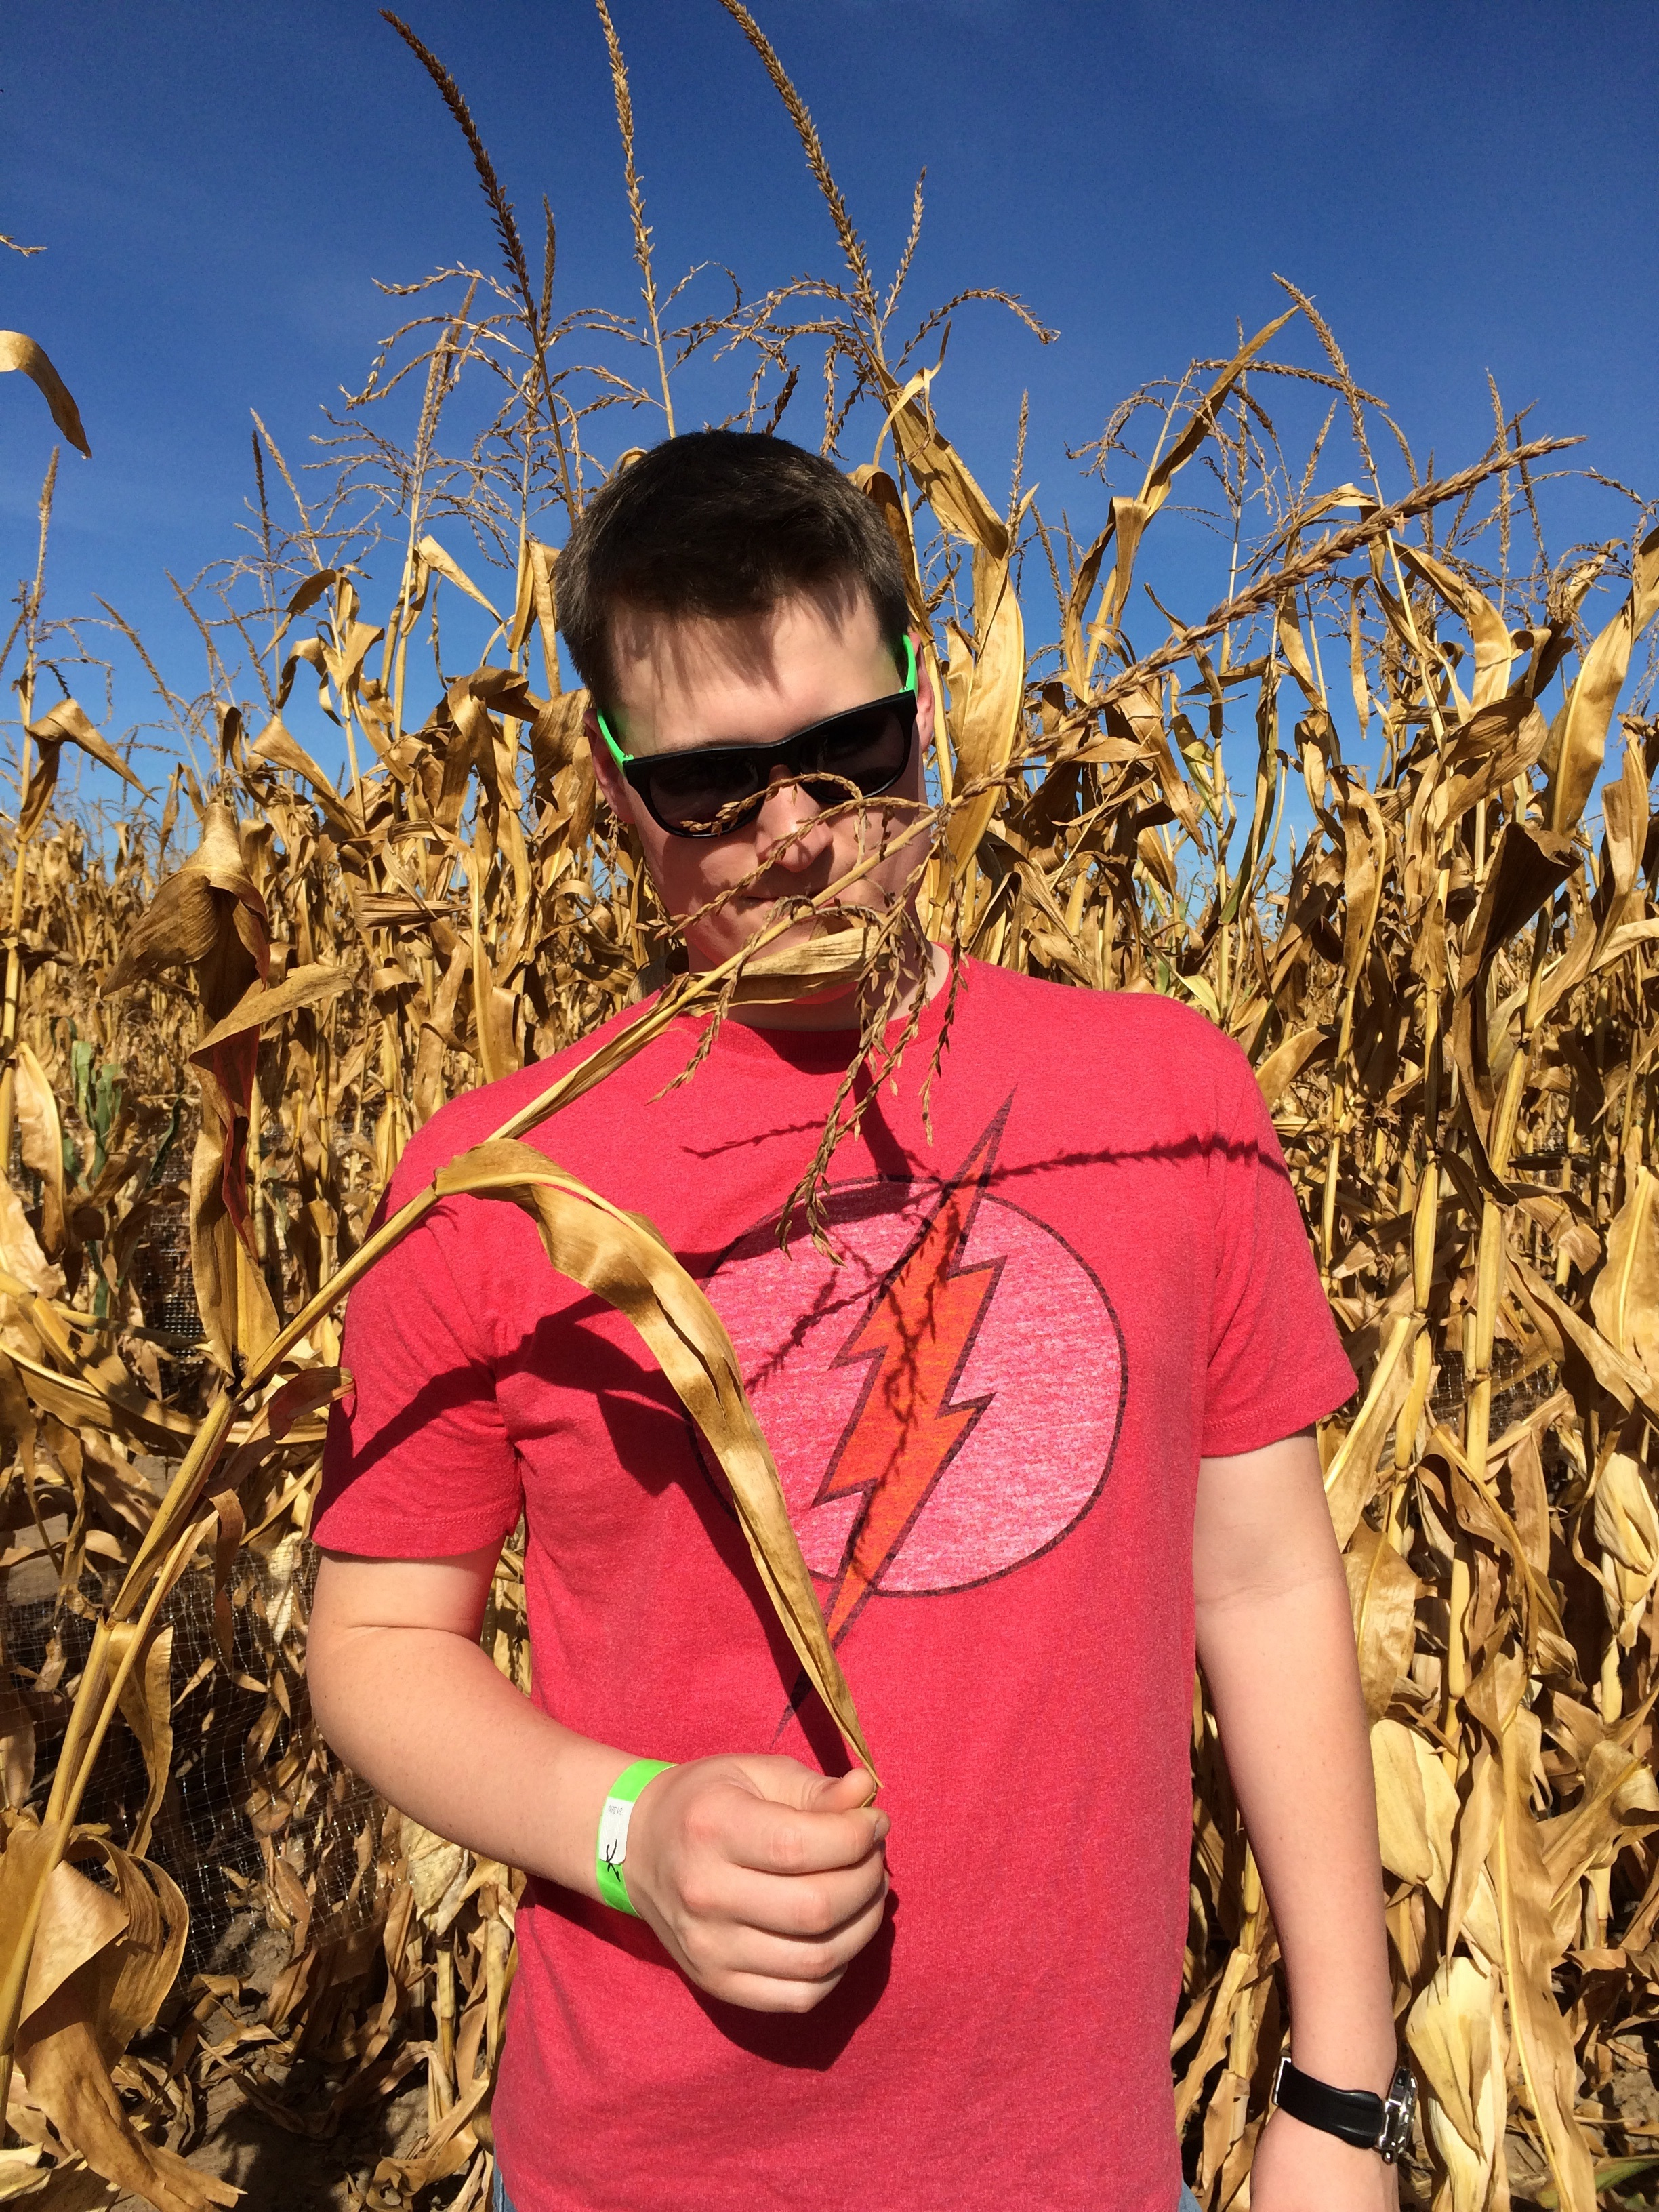 Hanging out at Fritzler's Corn Maze